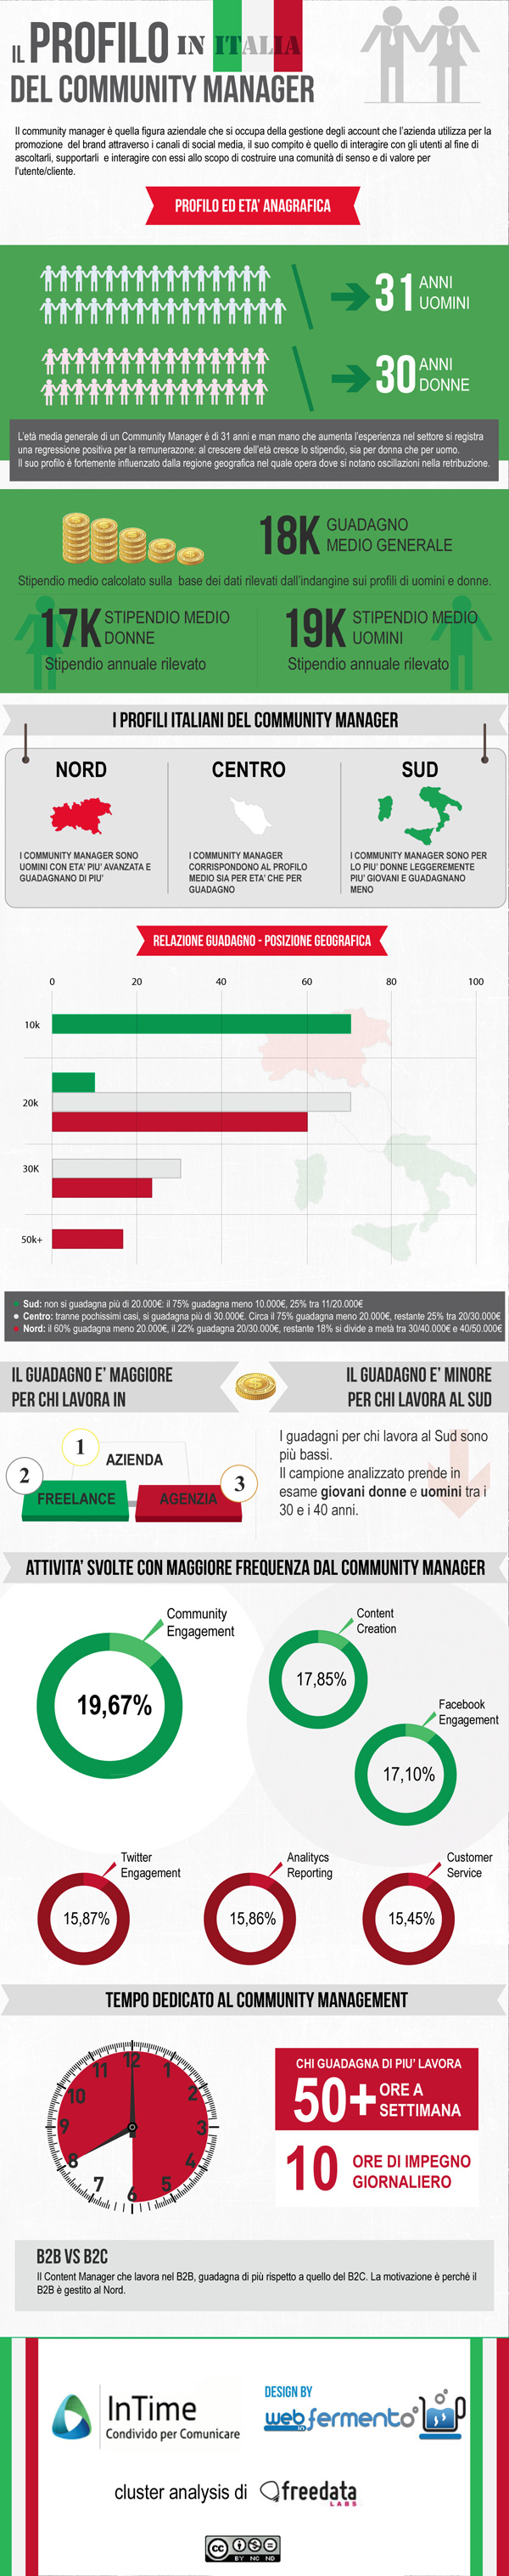 infografica_profilo_community_manager Community Manager in Italia: differenze, età e stipendio.